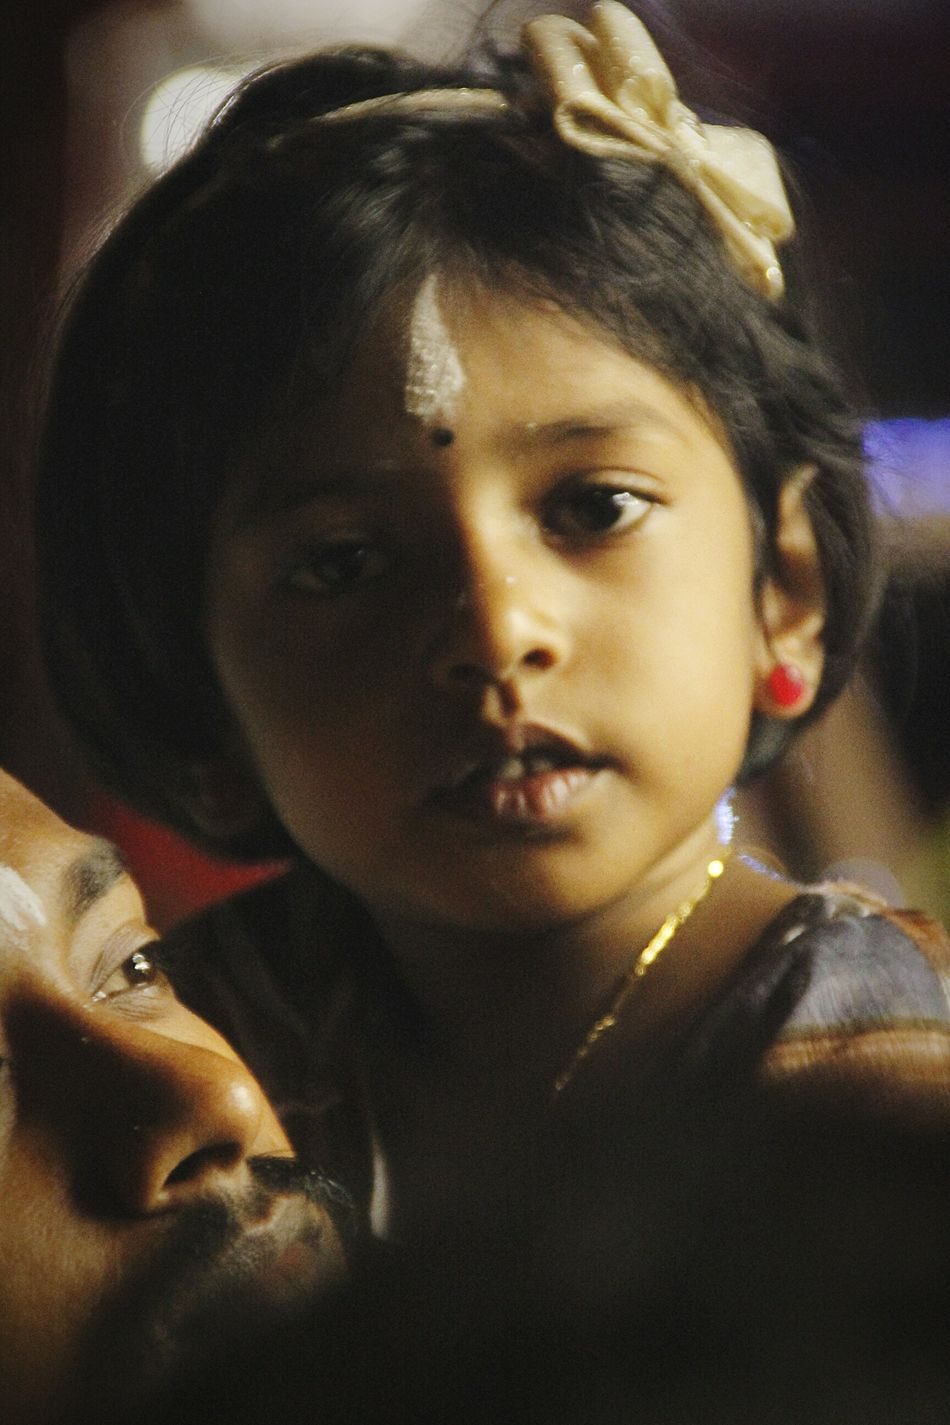 Indoors  Headshot Leisure Activity Close-up Lifestyles Person Looking At Camera Front View Casual Clothing Innocence Young Adult Focus On Foreground Black Hair Toddler  Domestic Life Windy Enjoying Life EyeEm Best Shots Indian Eye4photography  Festival Season Thaipusam2016